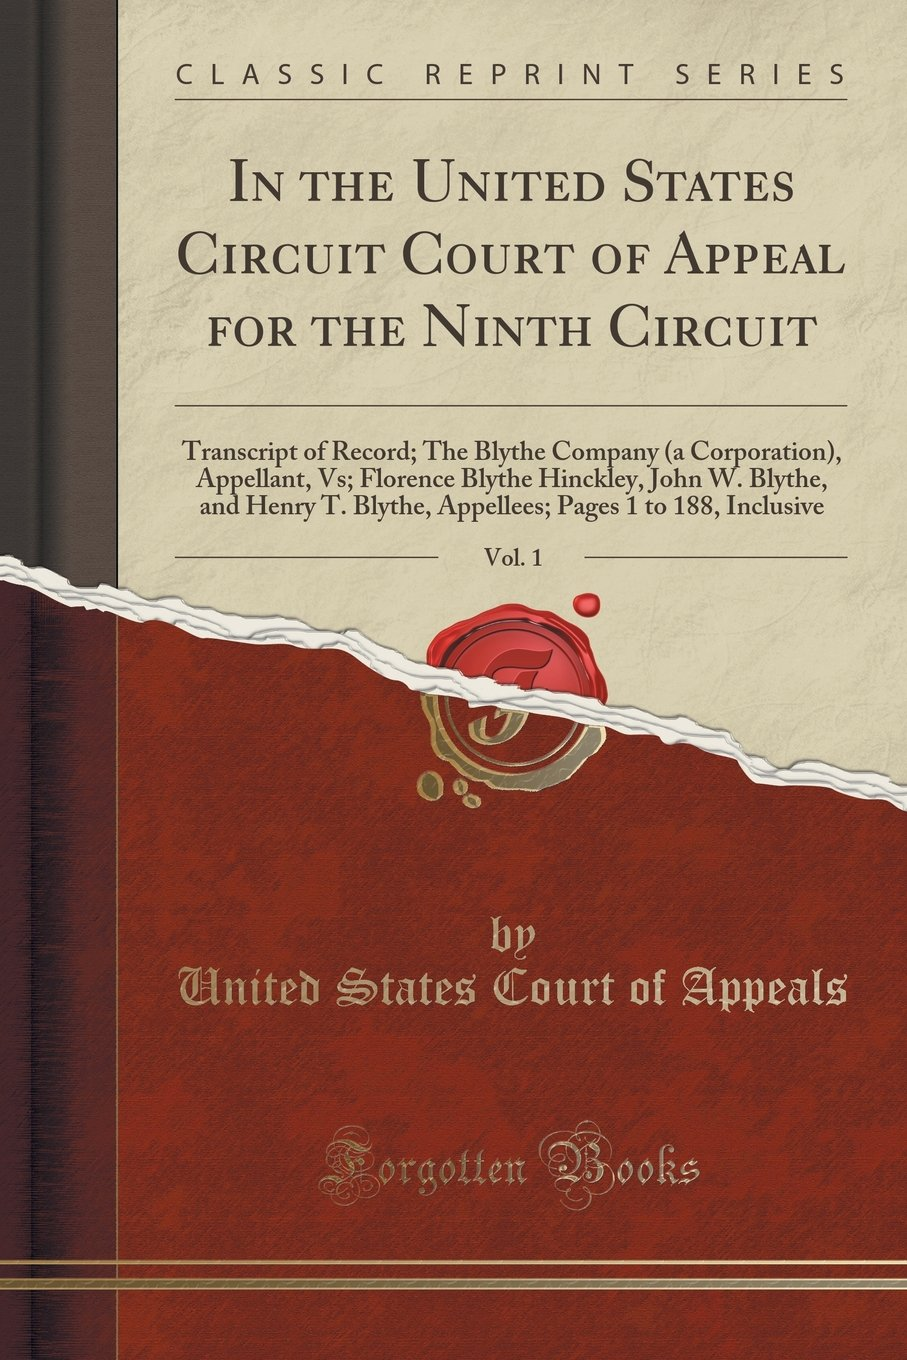 Read Online In the United States Circuit Court of Appeal for the Ninth Circuit, Vol. 1: Transcript of Record; The Blythe Company (a Corporation), Appellant, Vs; ... Blythe, Appellees; Pages 1 to 188, Inclusive ebook